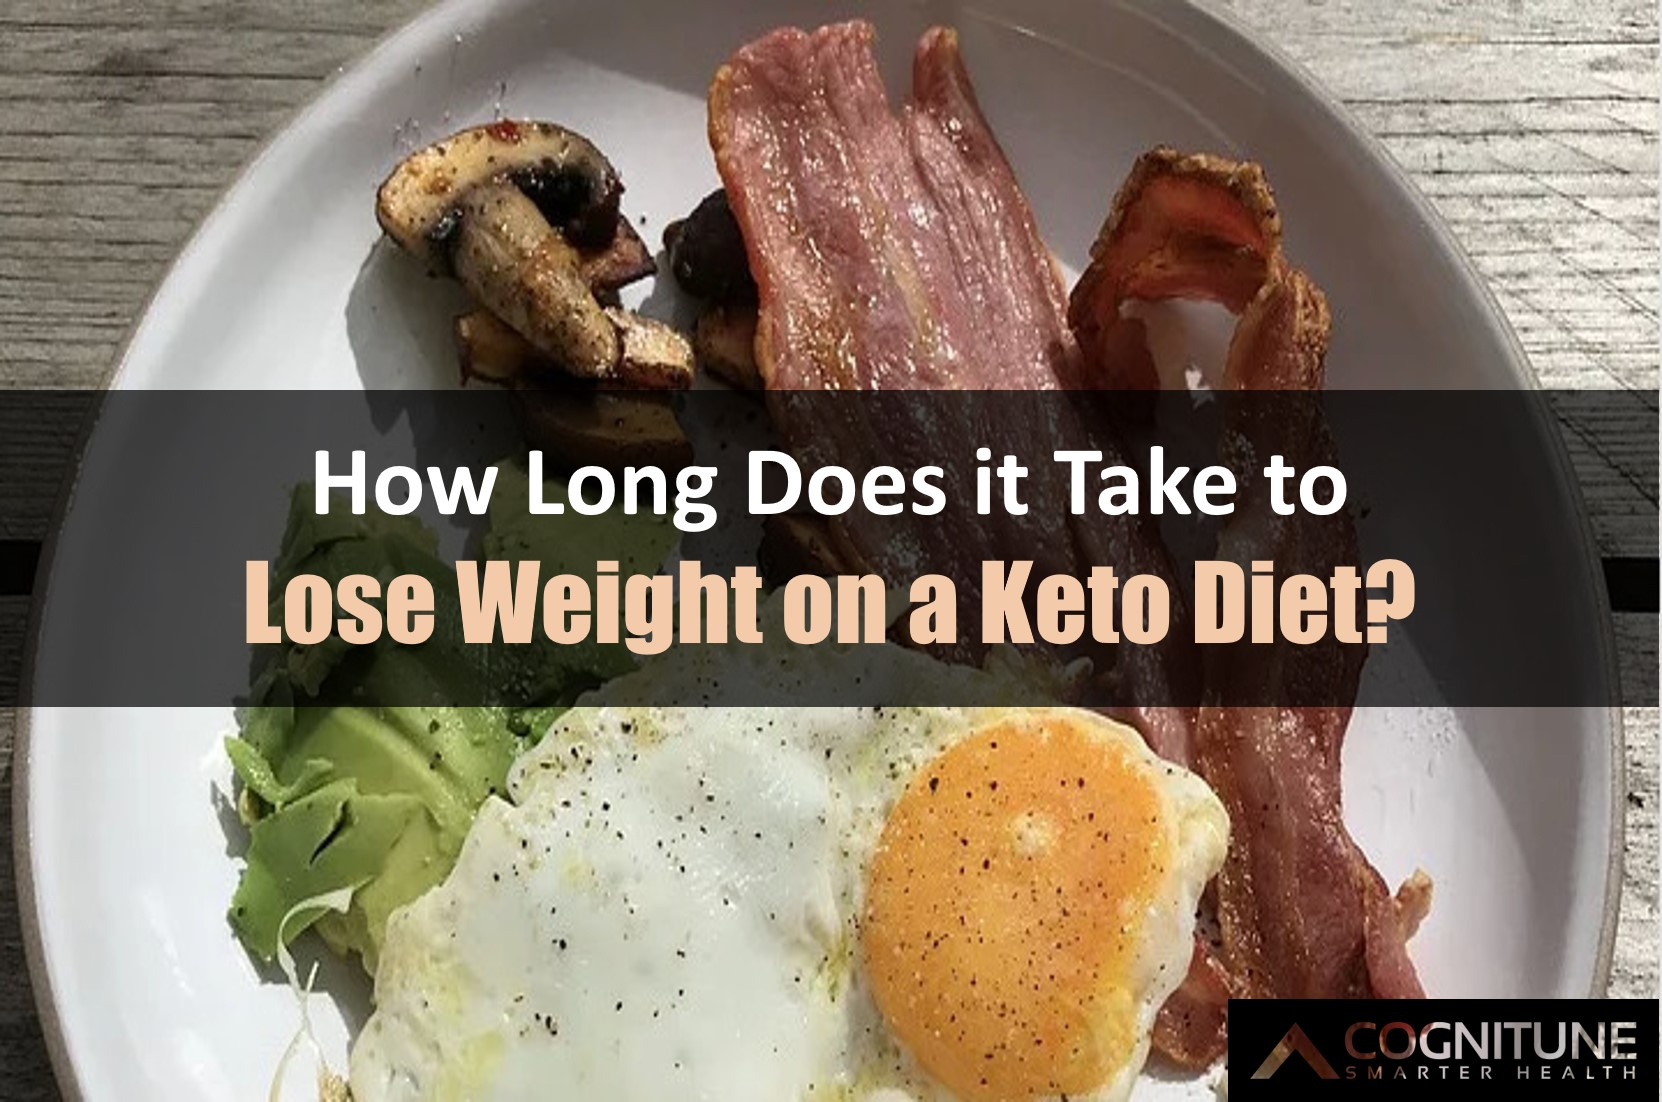 How long does it take to lose weight on a Keto Diet?